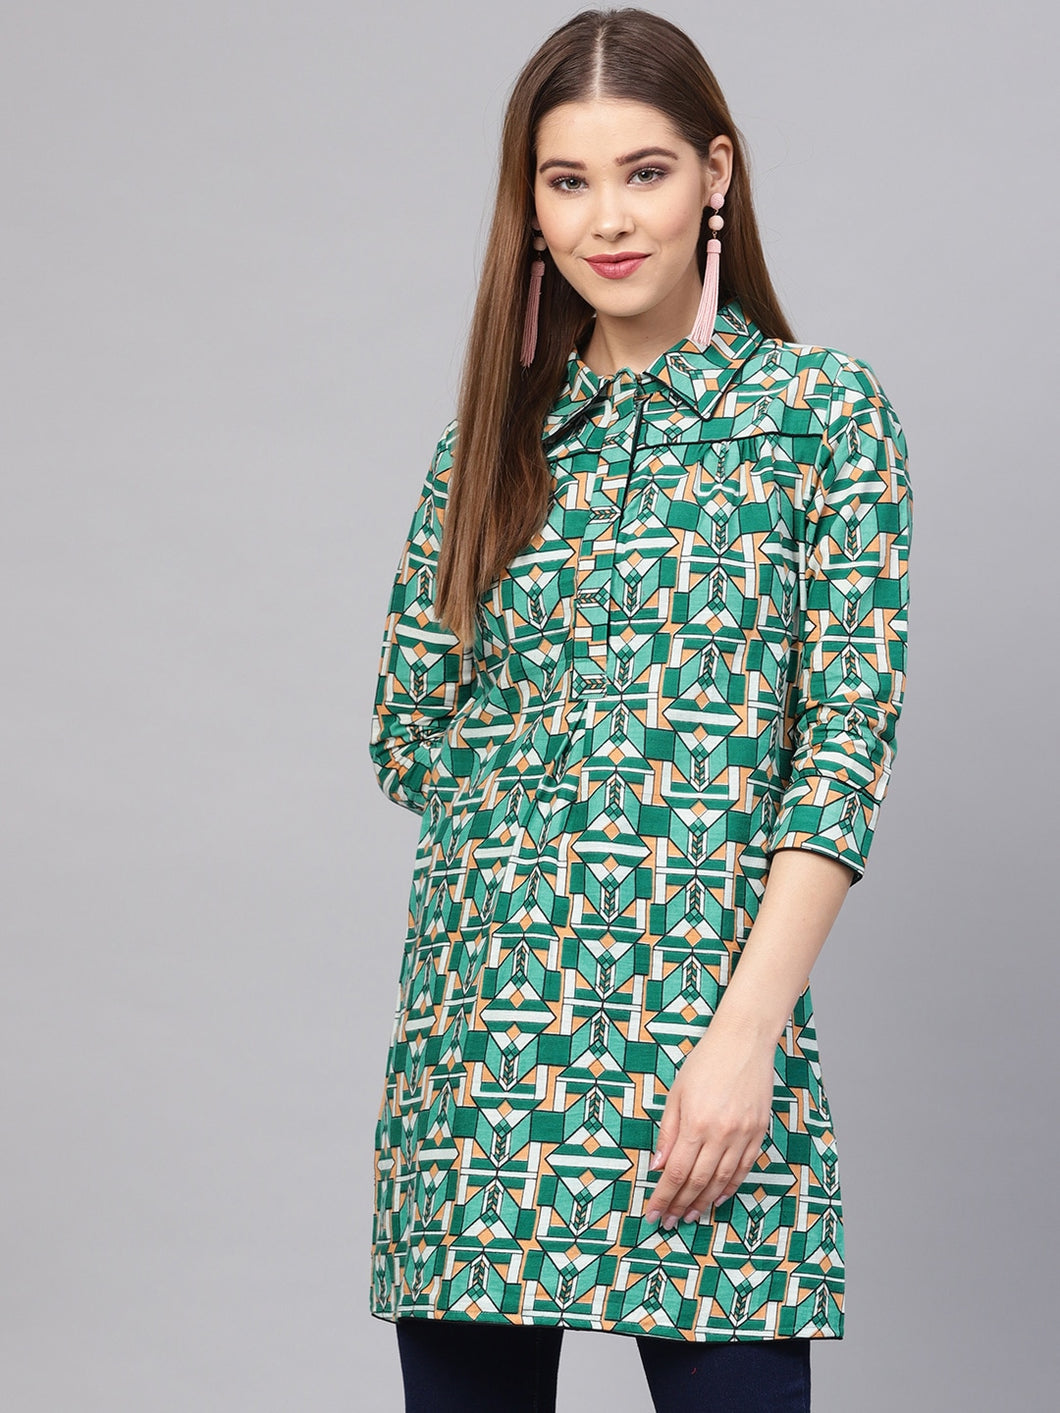 Yufta Green Printed Tunic-S-Green